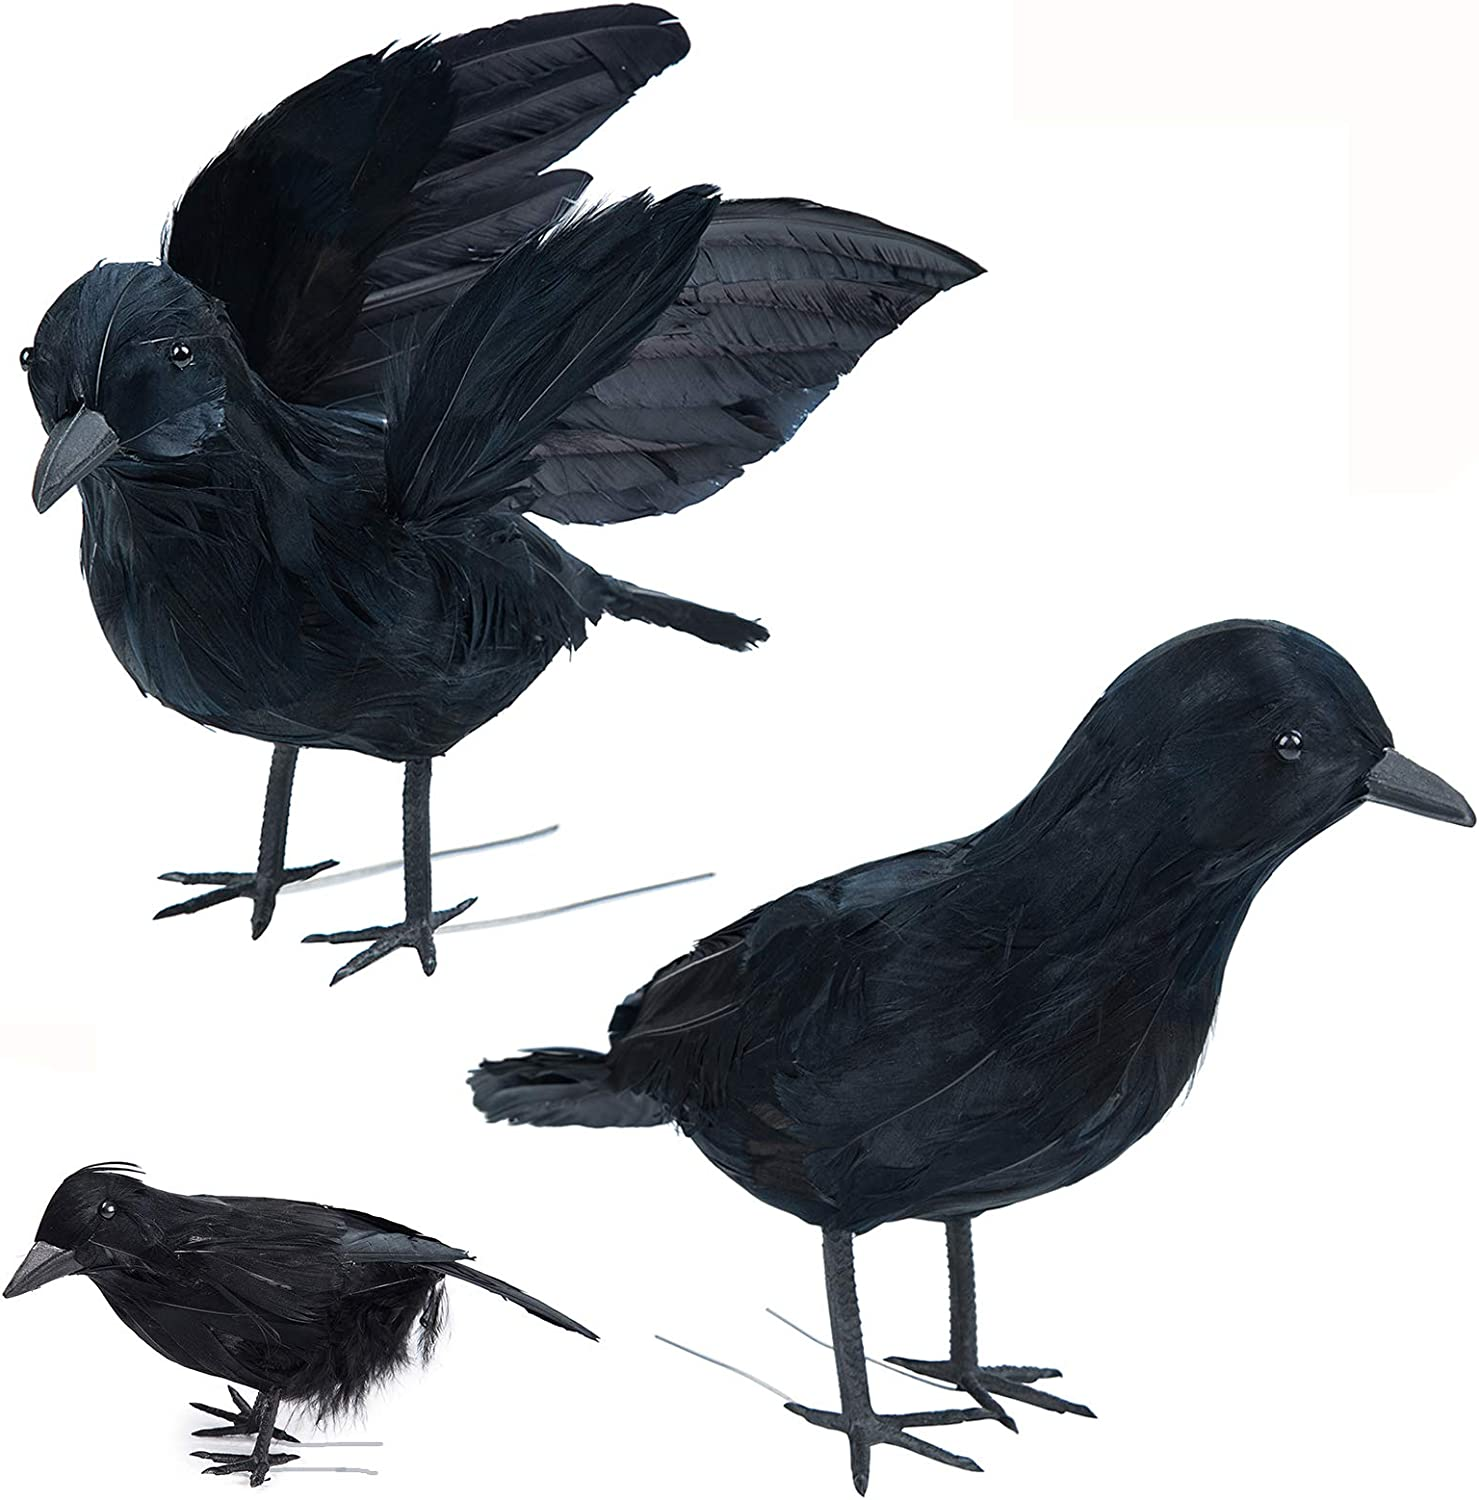 Tinsow 3 Pcs Halloween Realistic Handmade Crow Prop Black Feathered Crow Fly and Stand Crows Ravens for Outdoors and Indoors Crow Decoration (Black, 3)